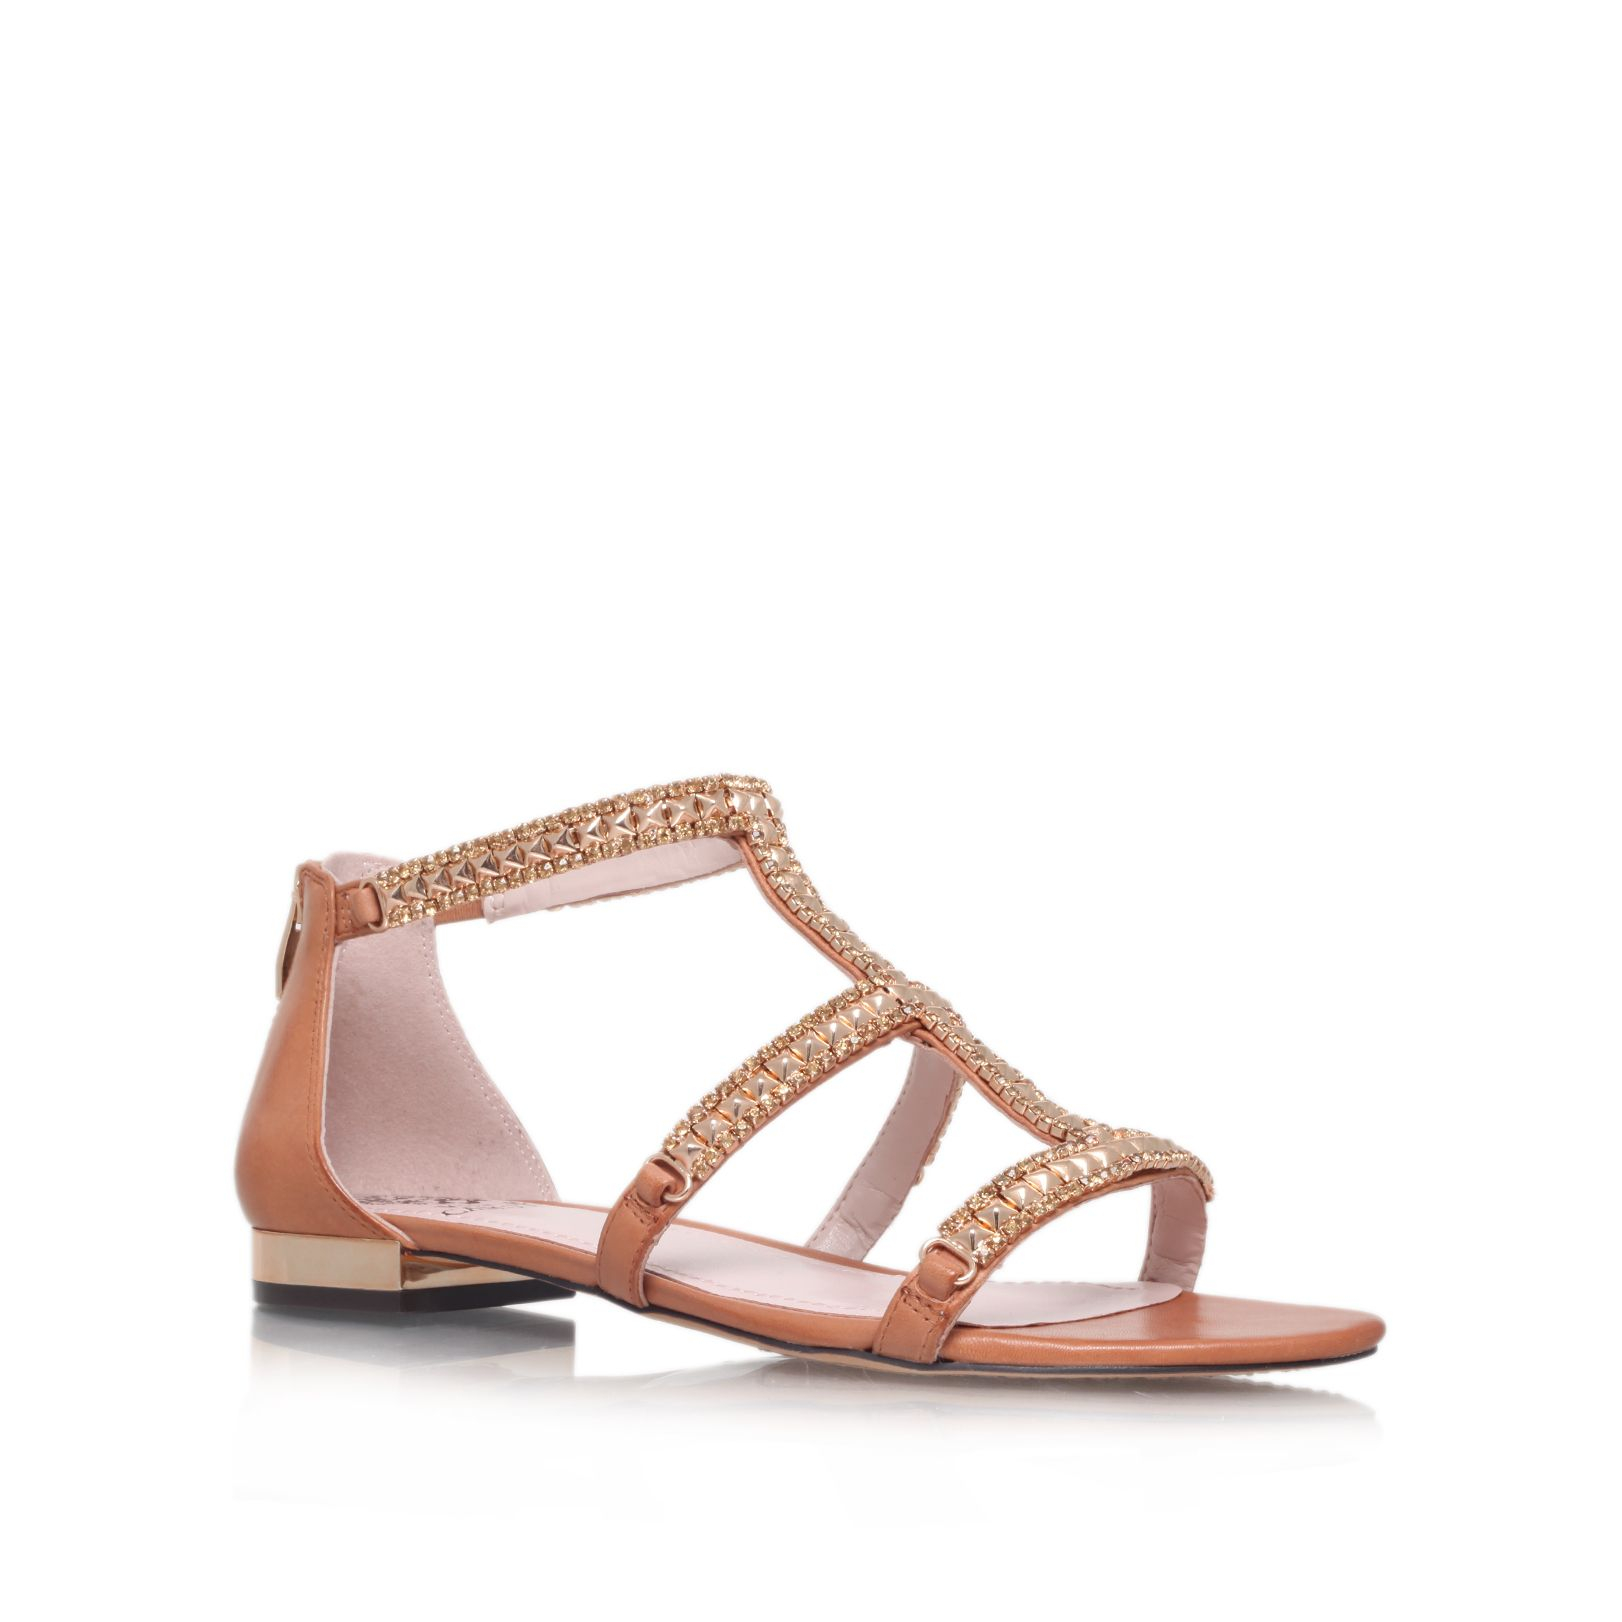 Vince Camuto Hilinda Flat Sandals In Brown Tan Lyst